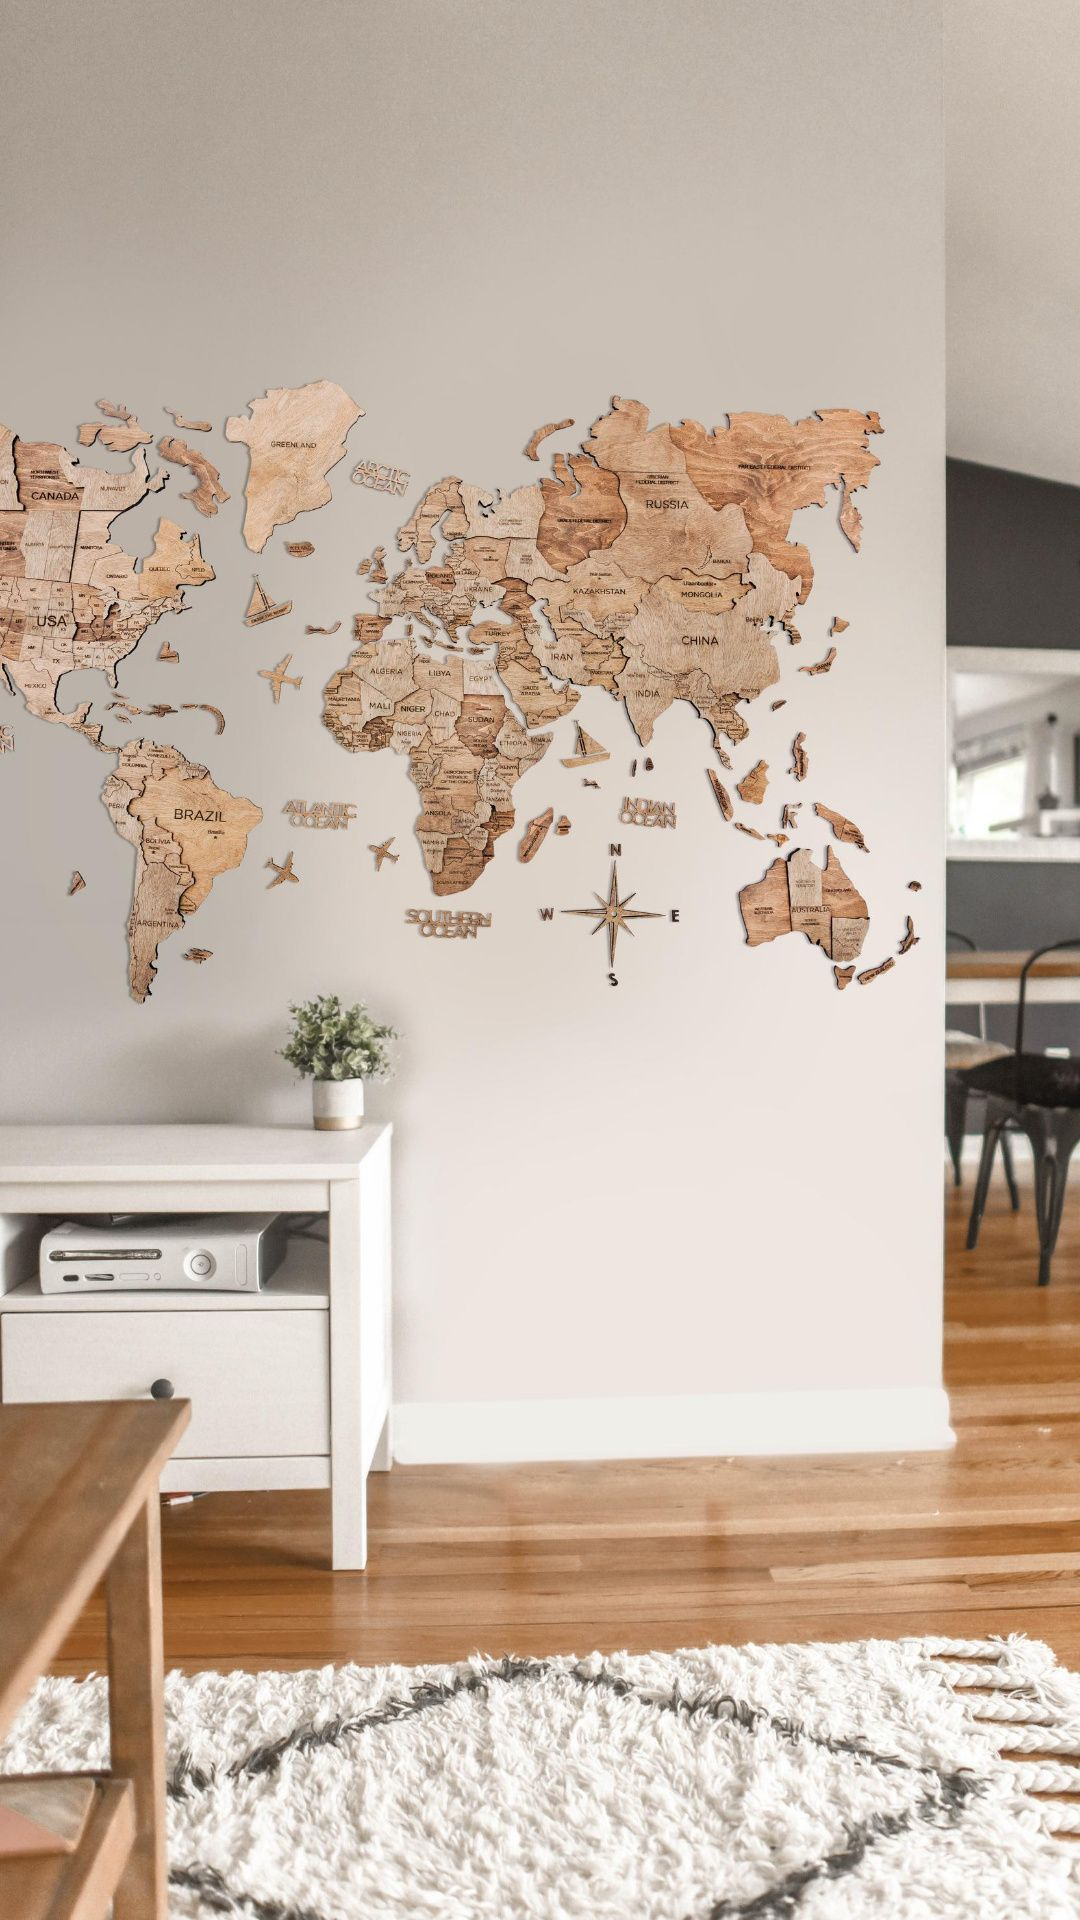 3D World Maps in 2020 World map, Wooden airplane, Wooden